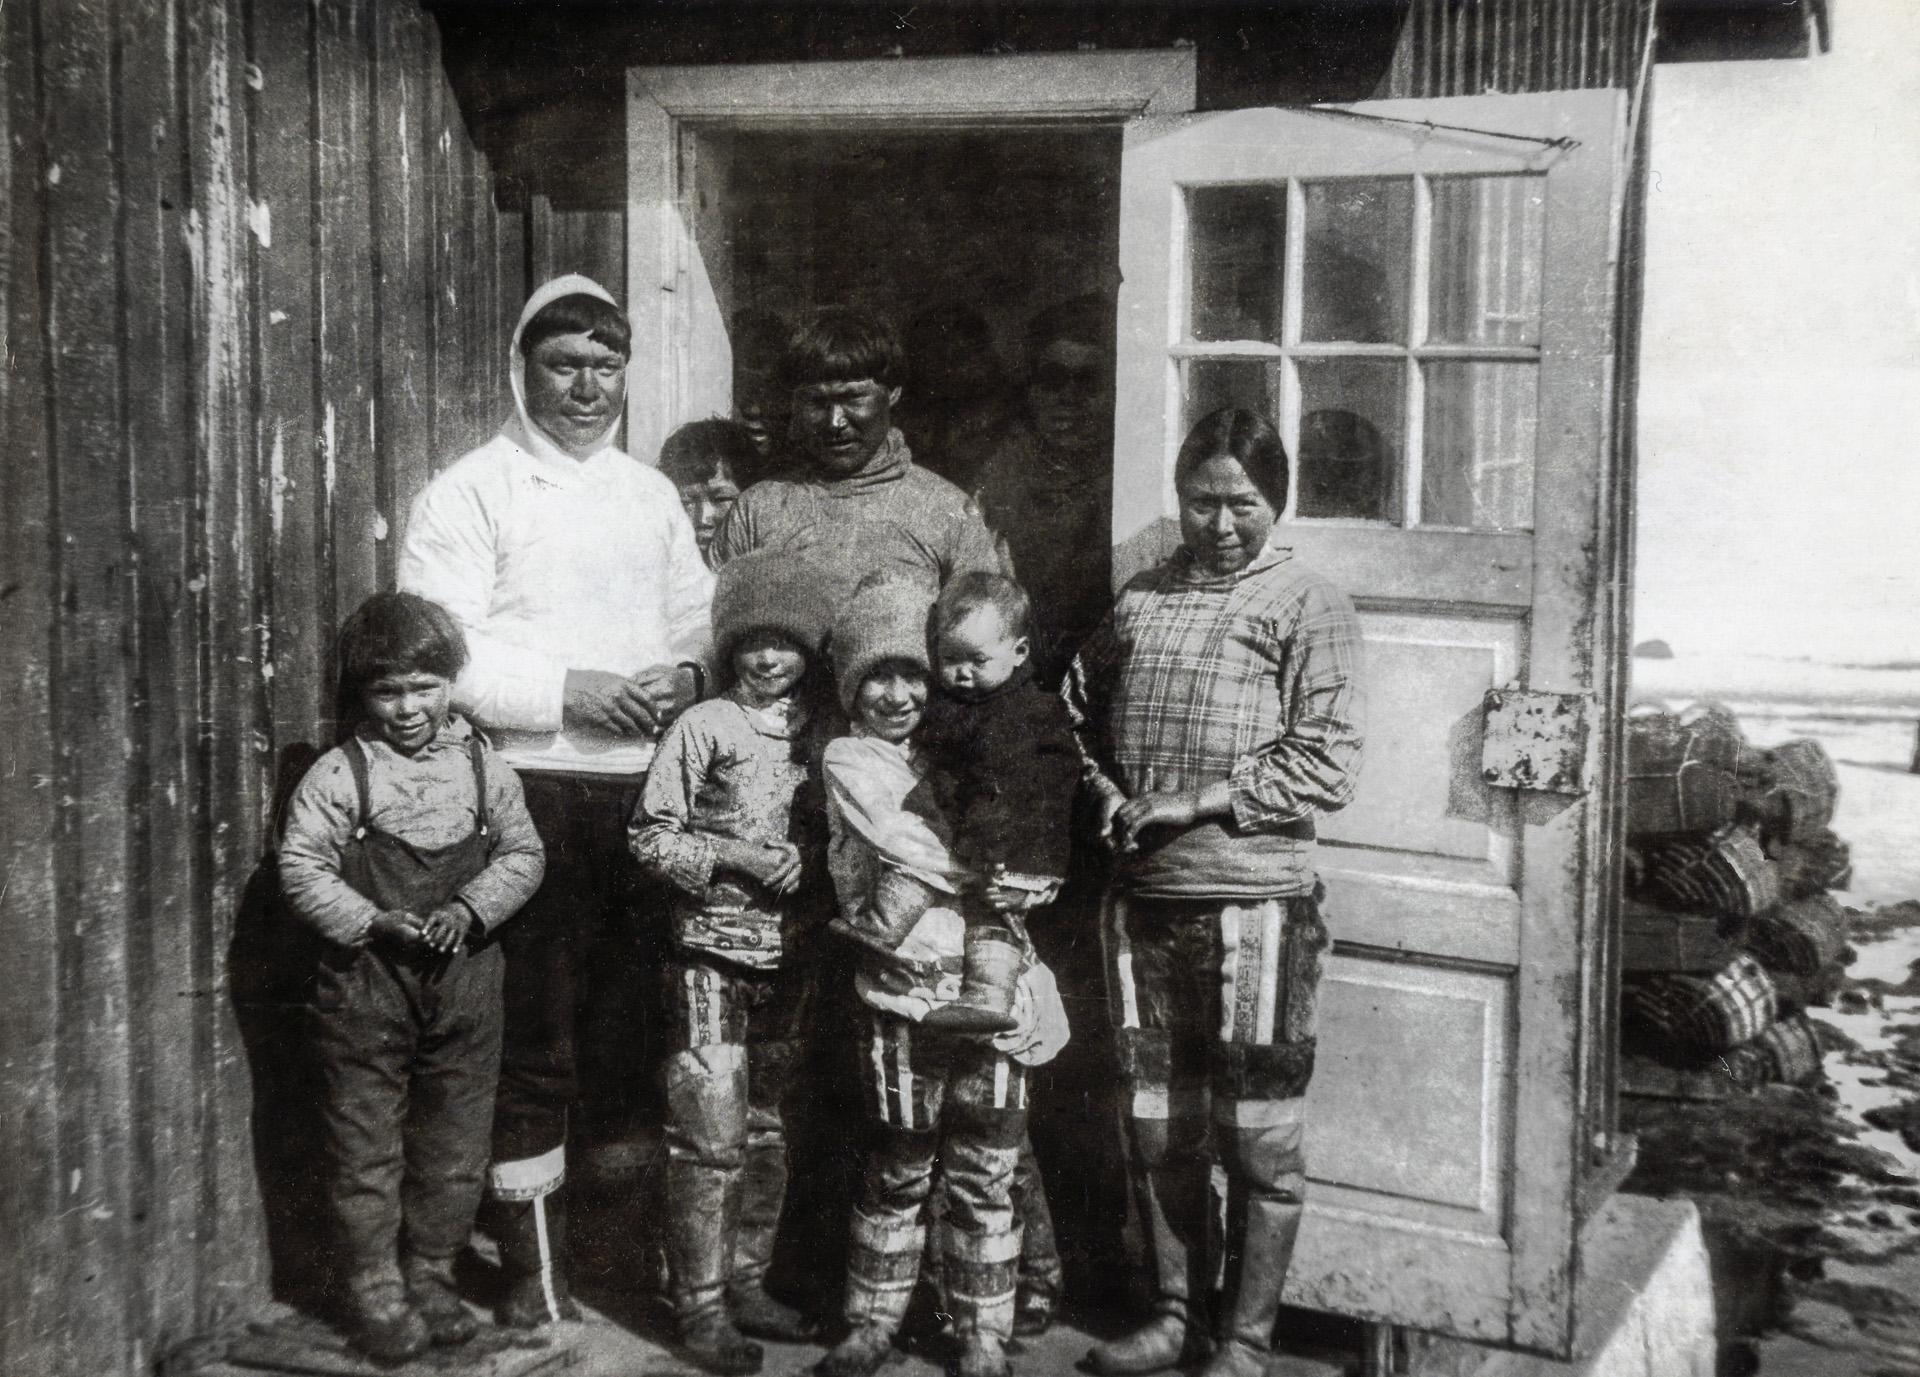 Martin and family